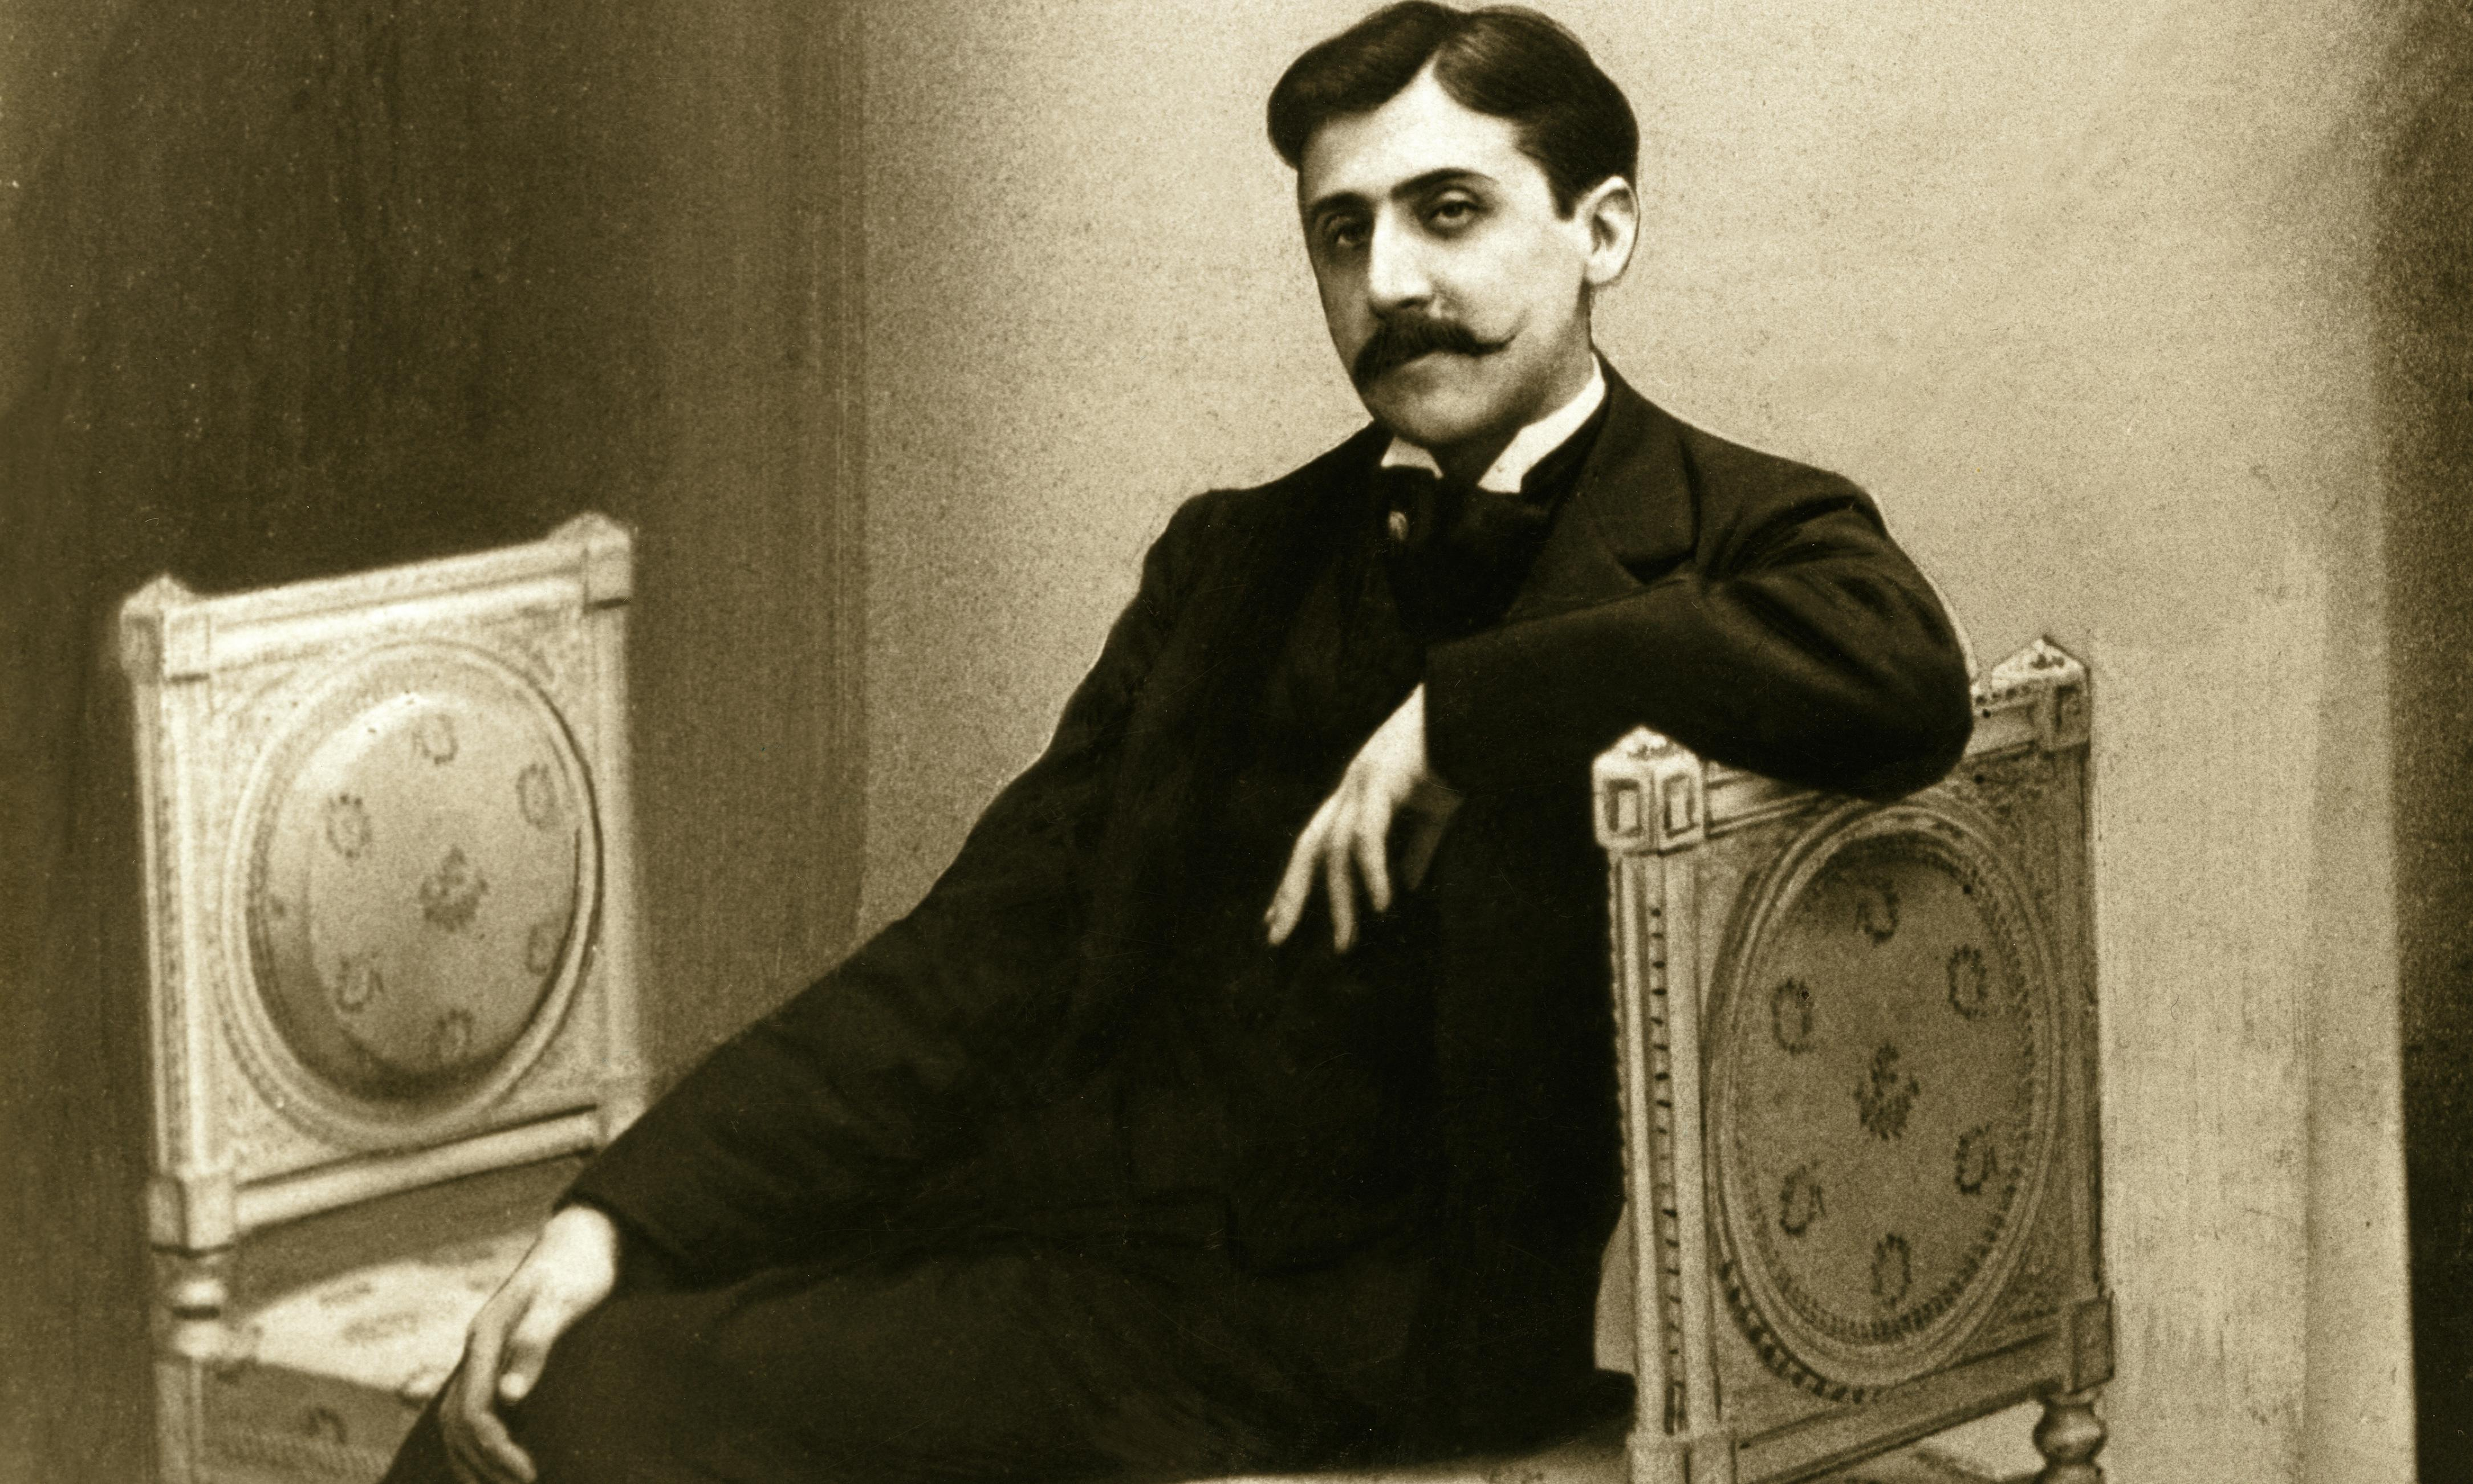 Lost Proust stories of homosexual love finally published